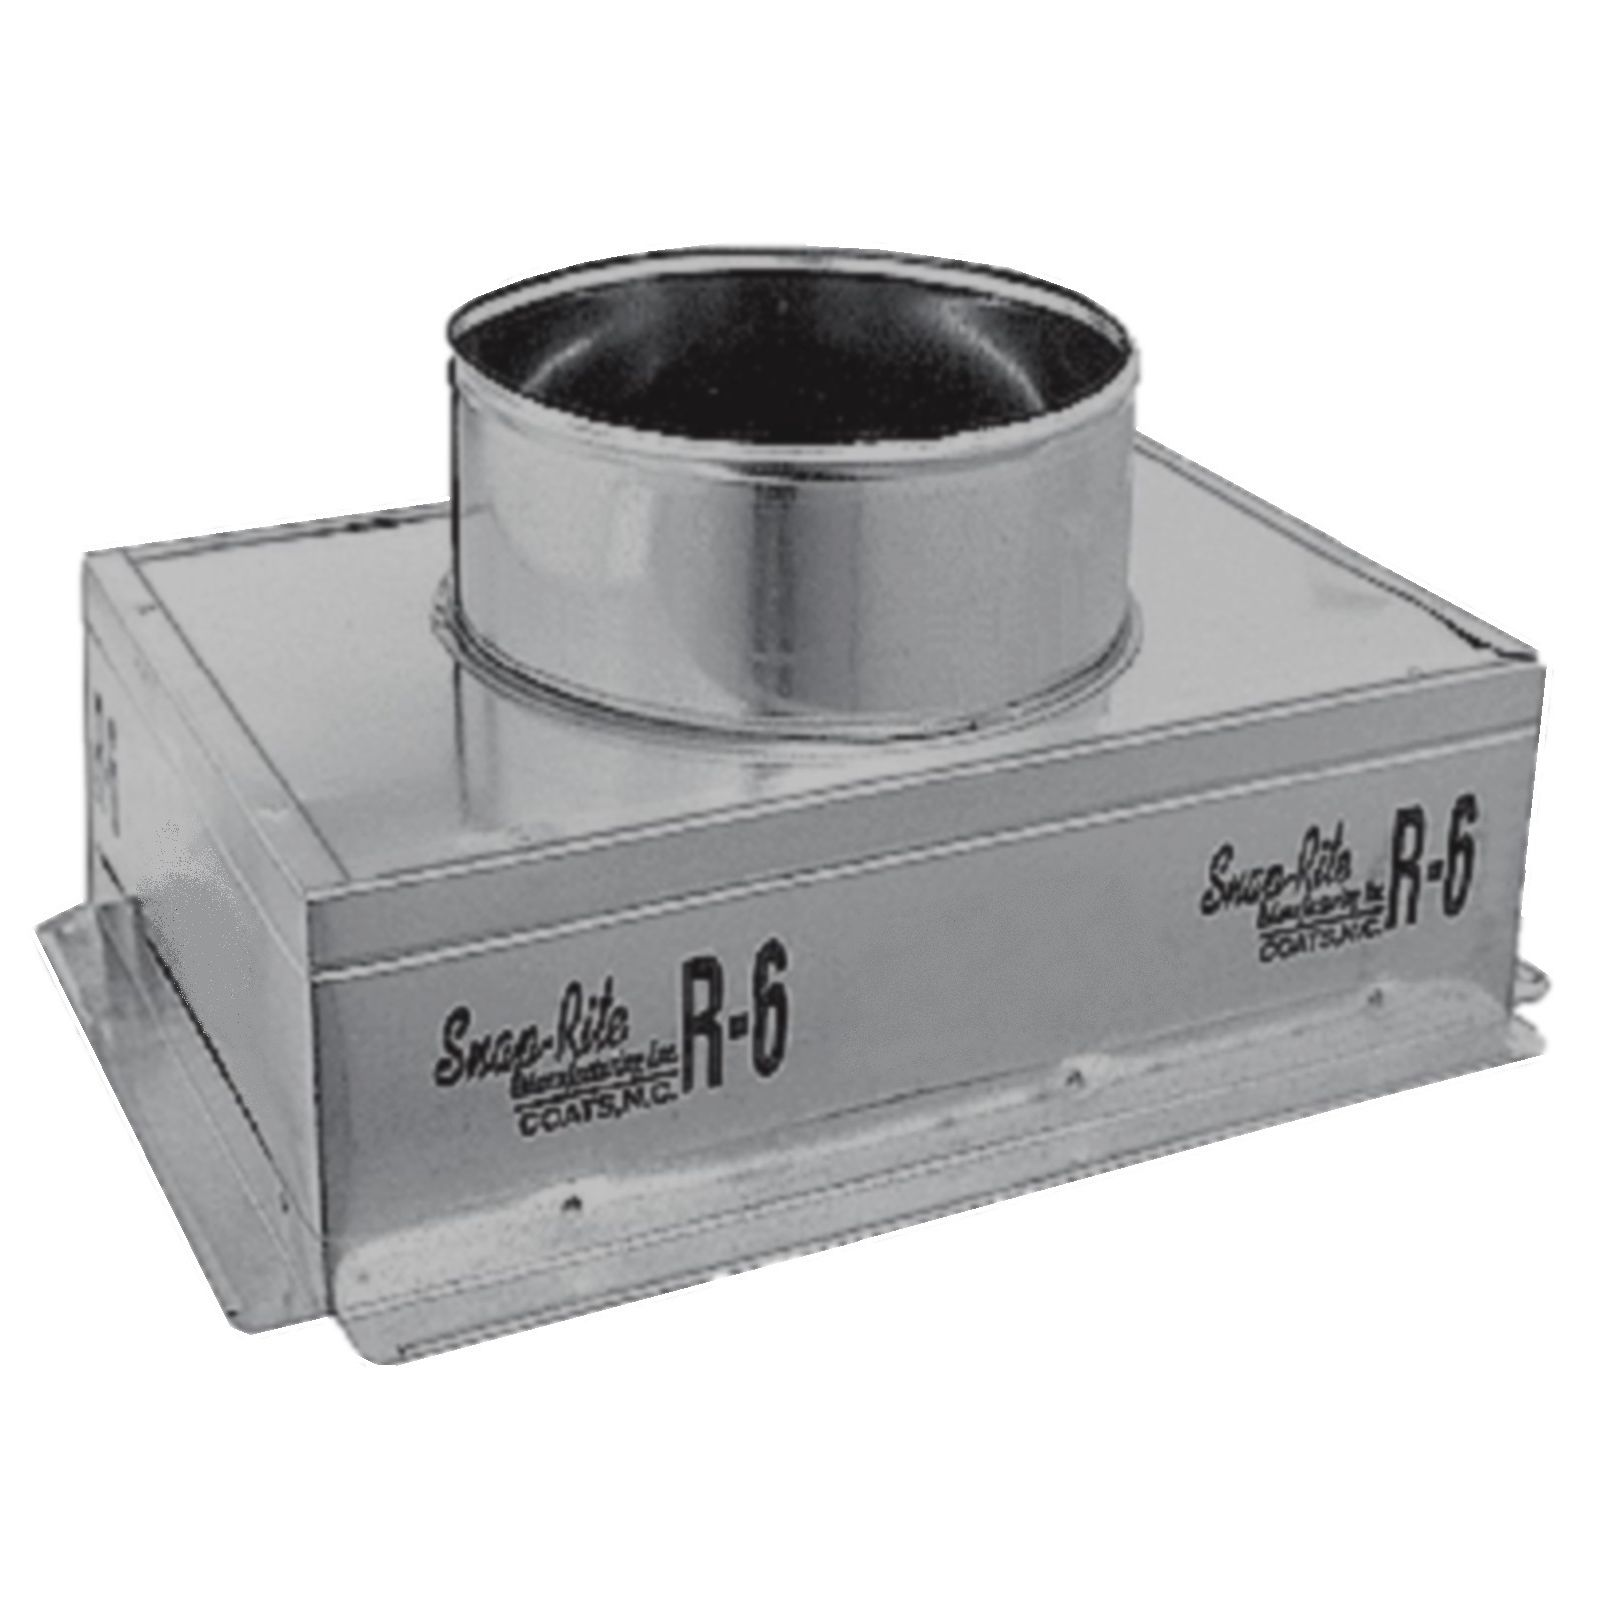 "Snap-Rite 14X08X093600FG - Metal Top Insulated Register Box With Flange and Gasket, 14"" x 8"" x 9"" - R6"